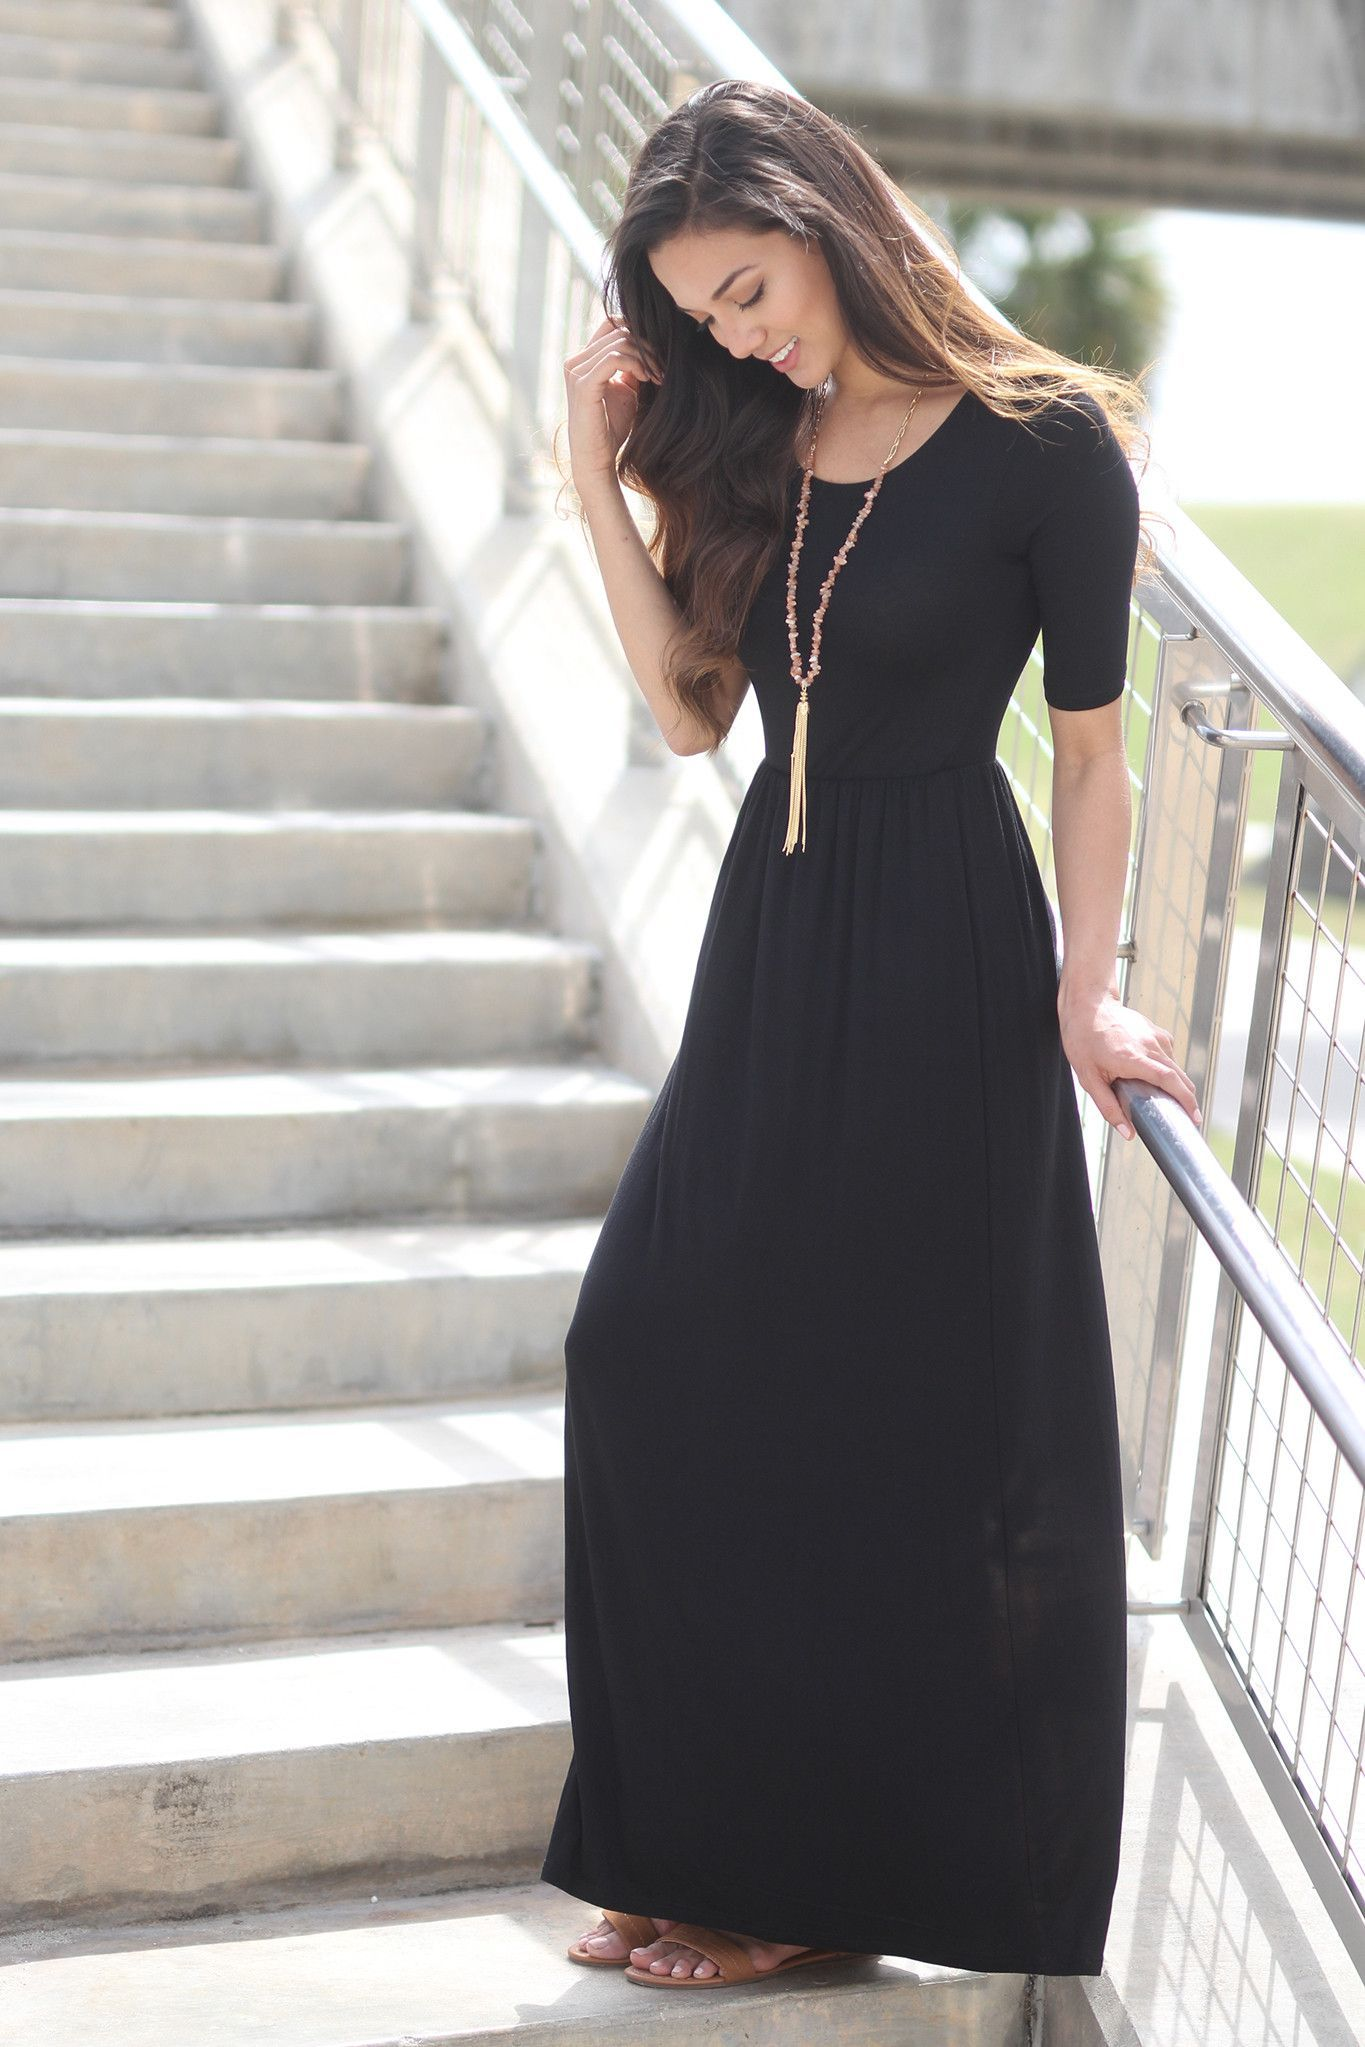 Black maxi dress with 34 sleeves my style pinterest black black maxi dress with 34 sleeves fandeluxe